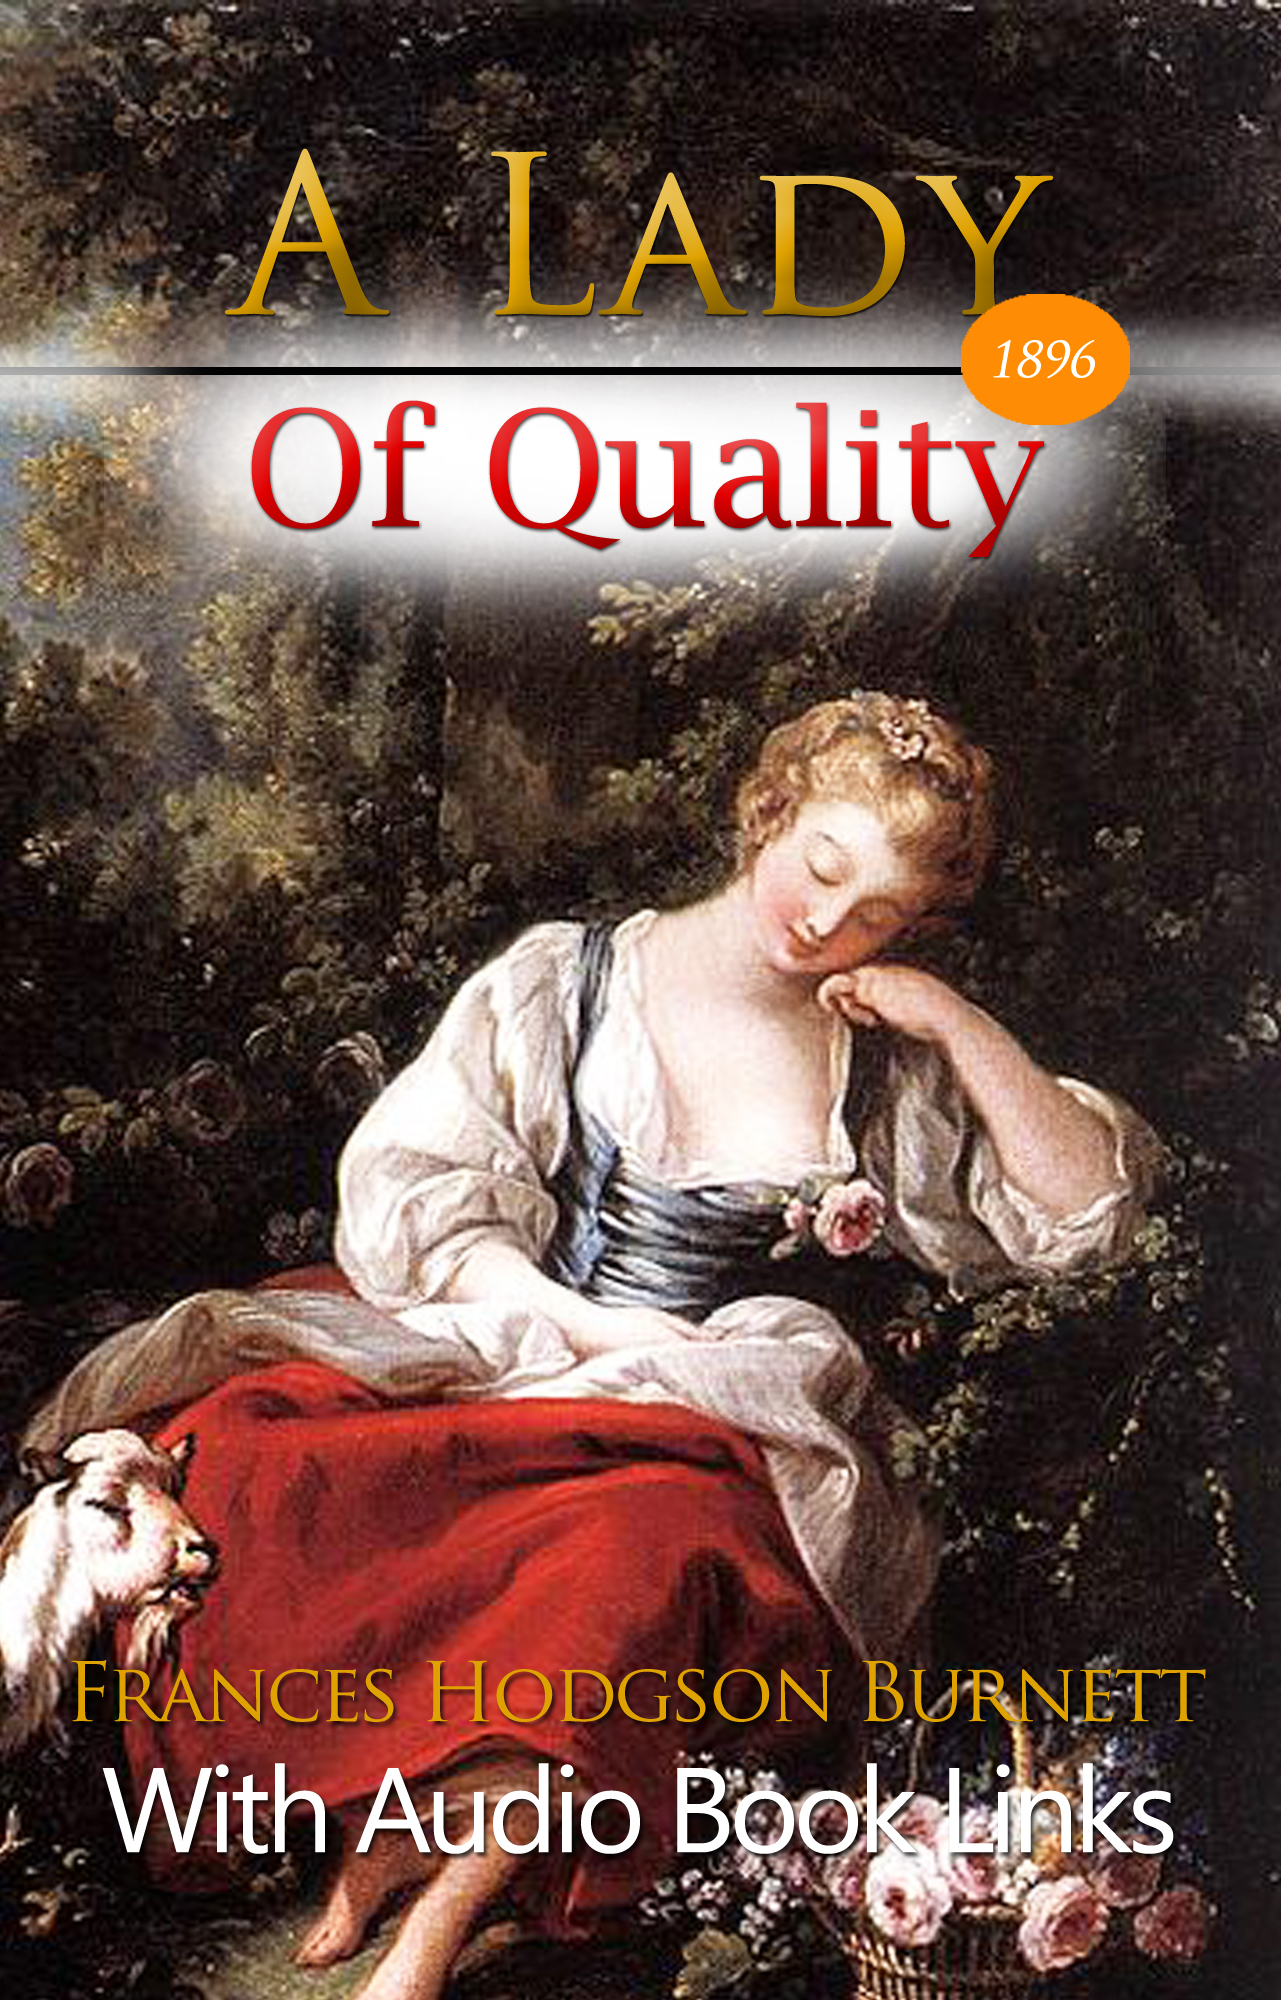 A LADY OF QUALITY Classic Novels: New Illustrated [Free Audio Links]